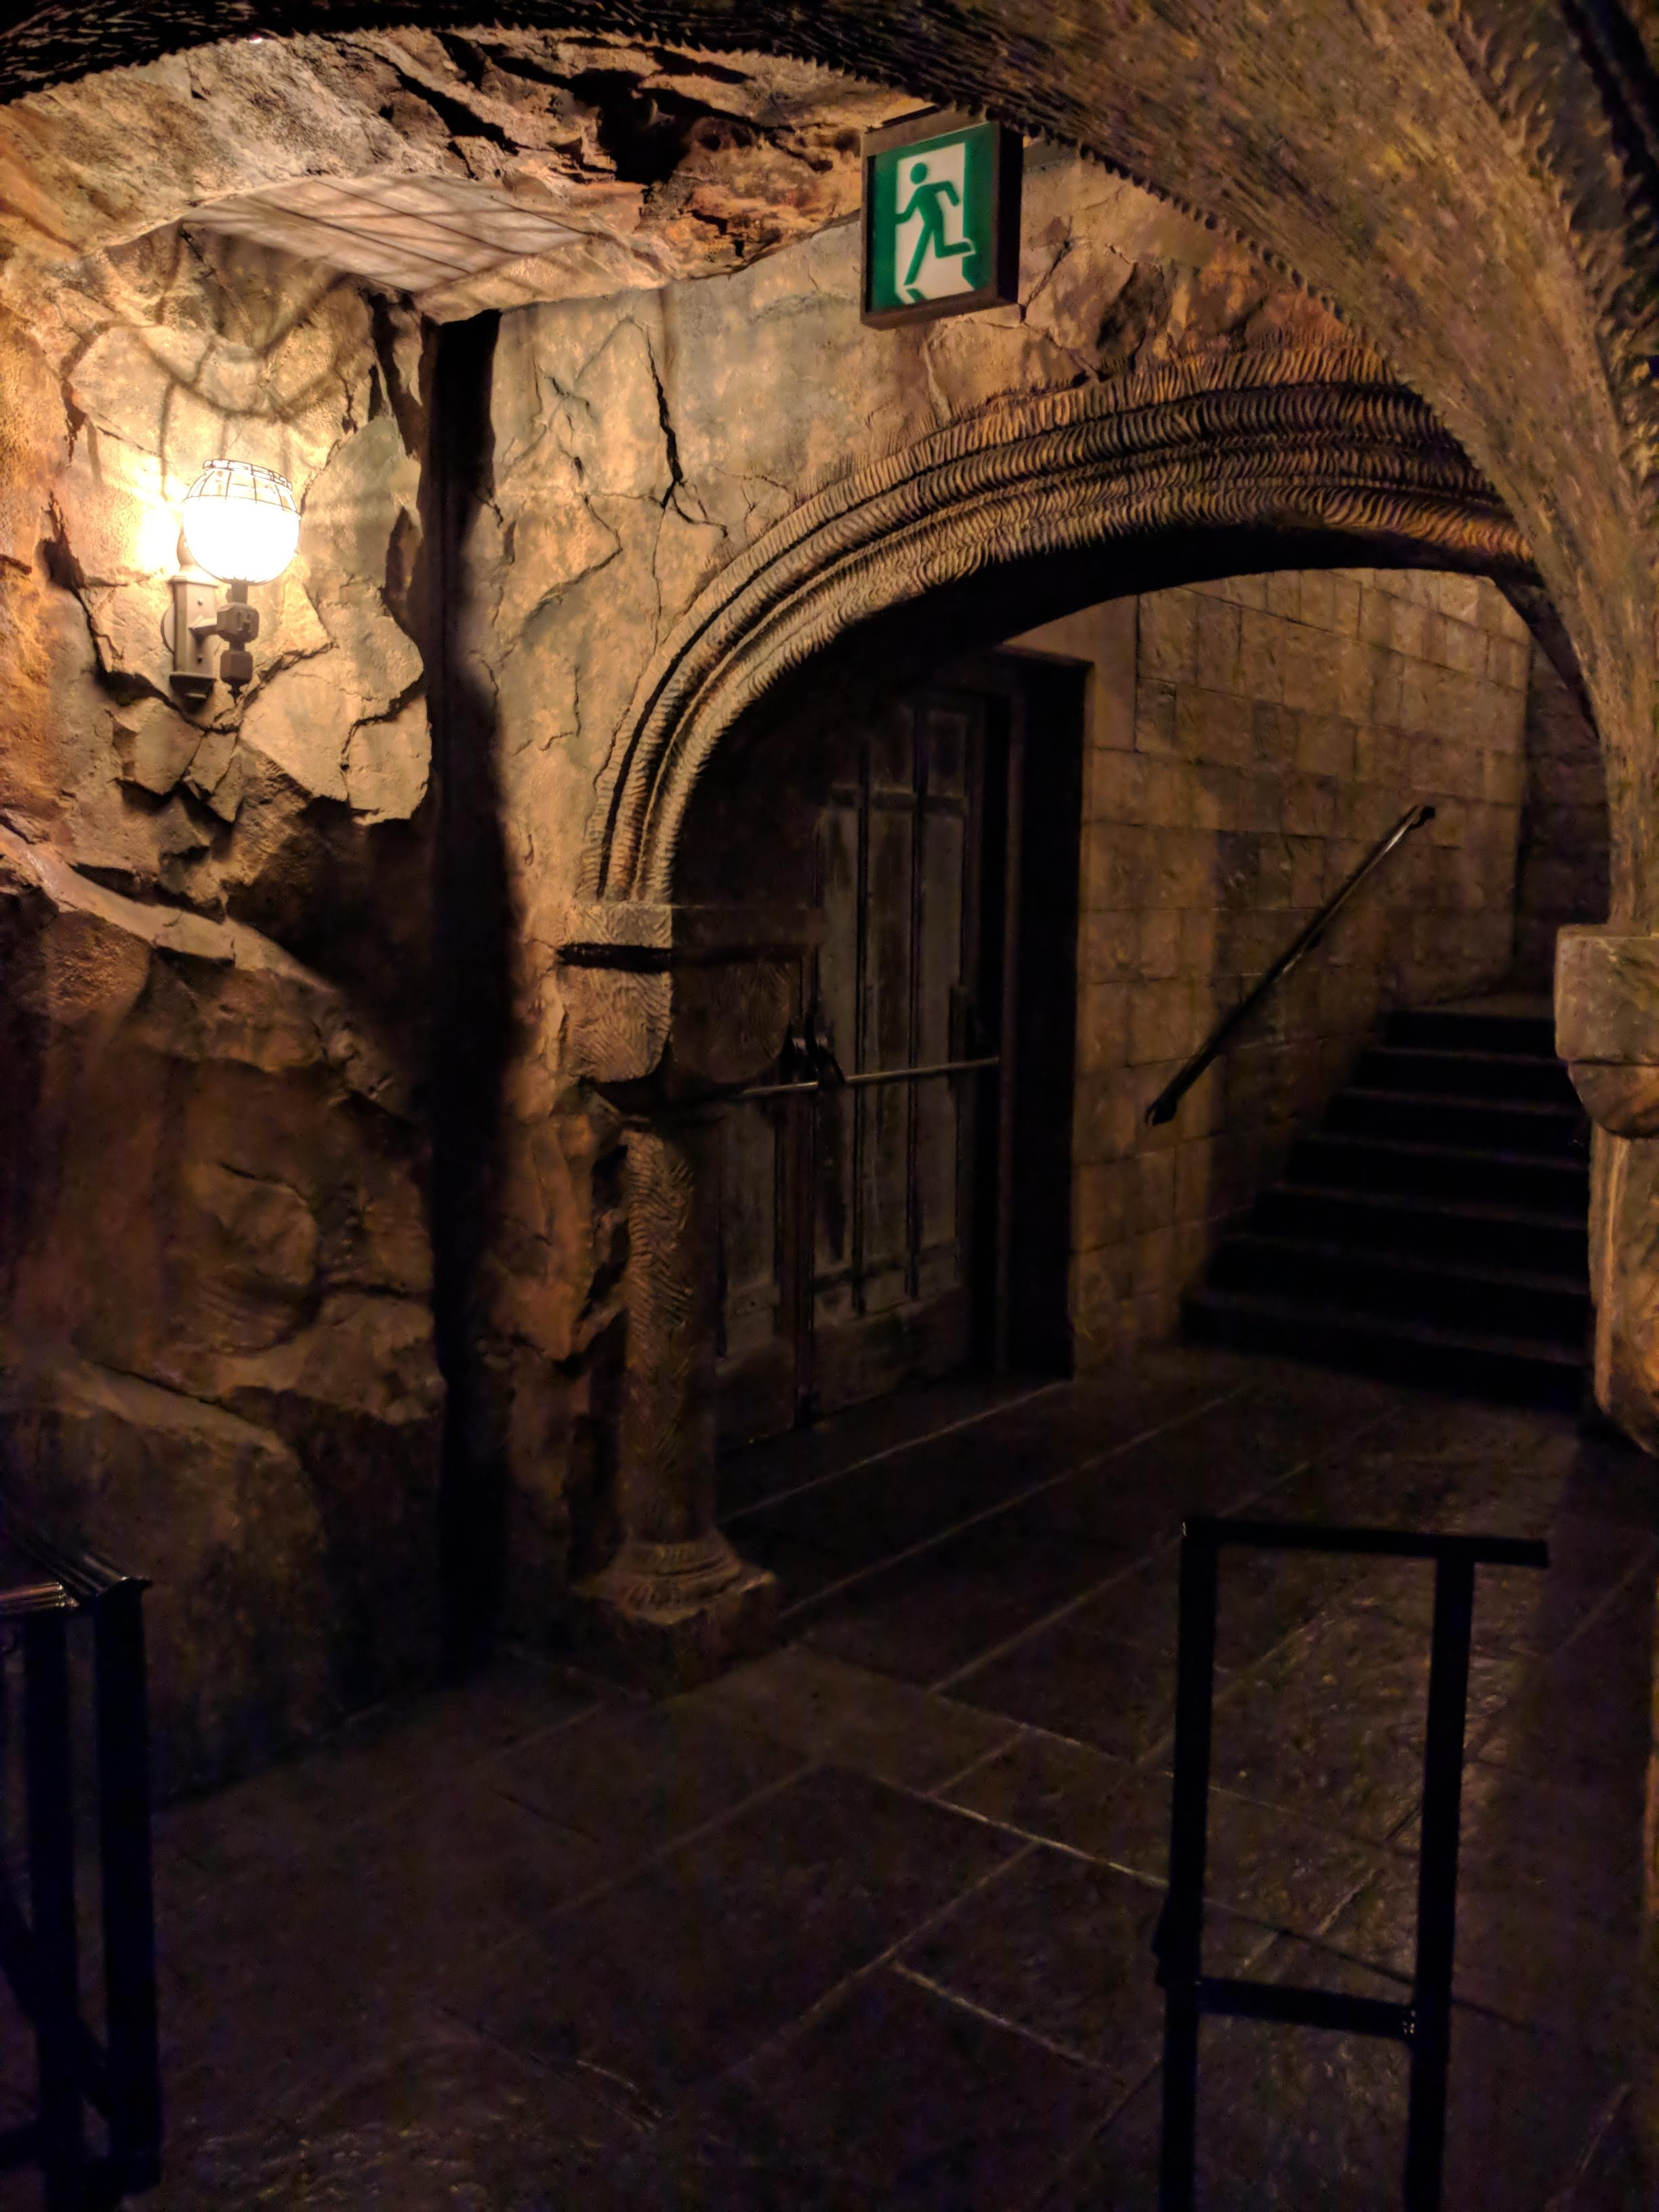 Harry Potter and the Forbidden Journey - Universal Studios Japan